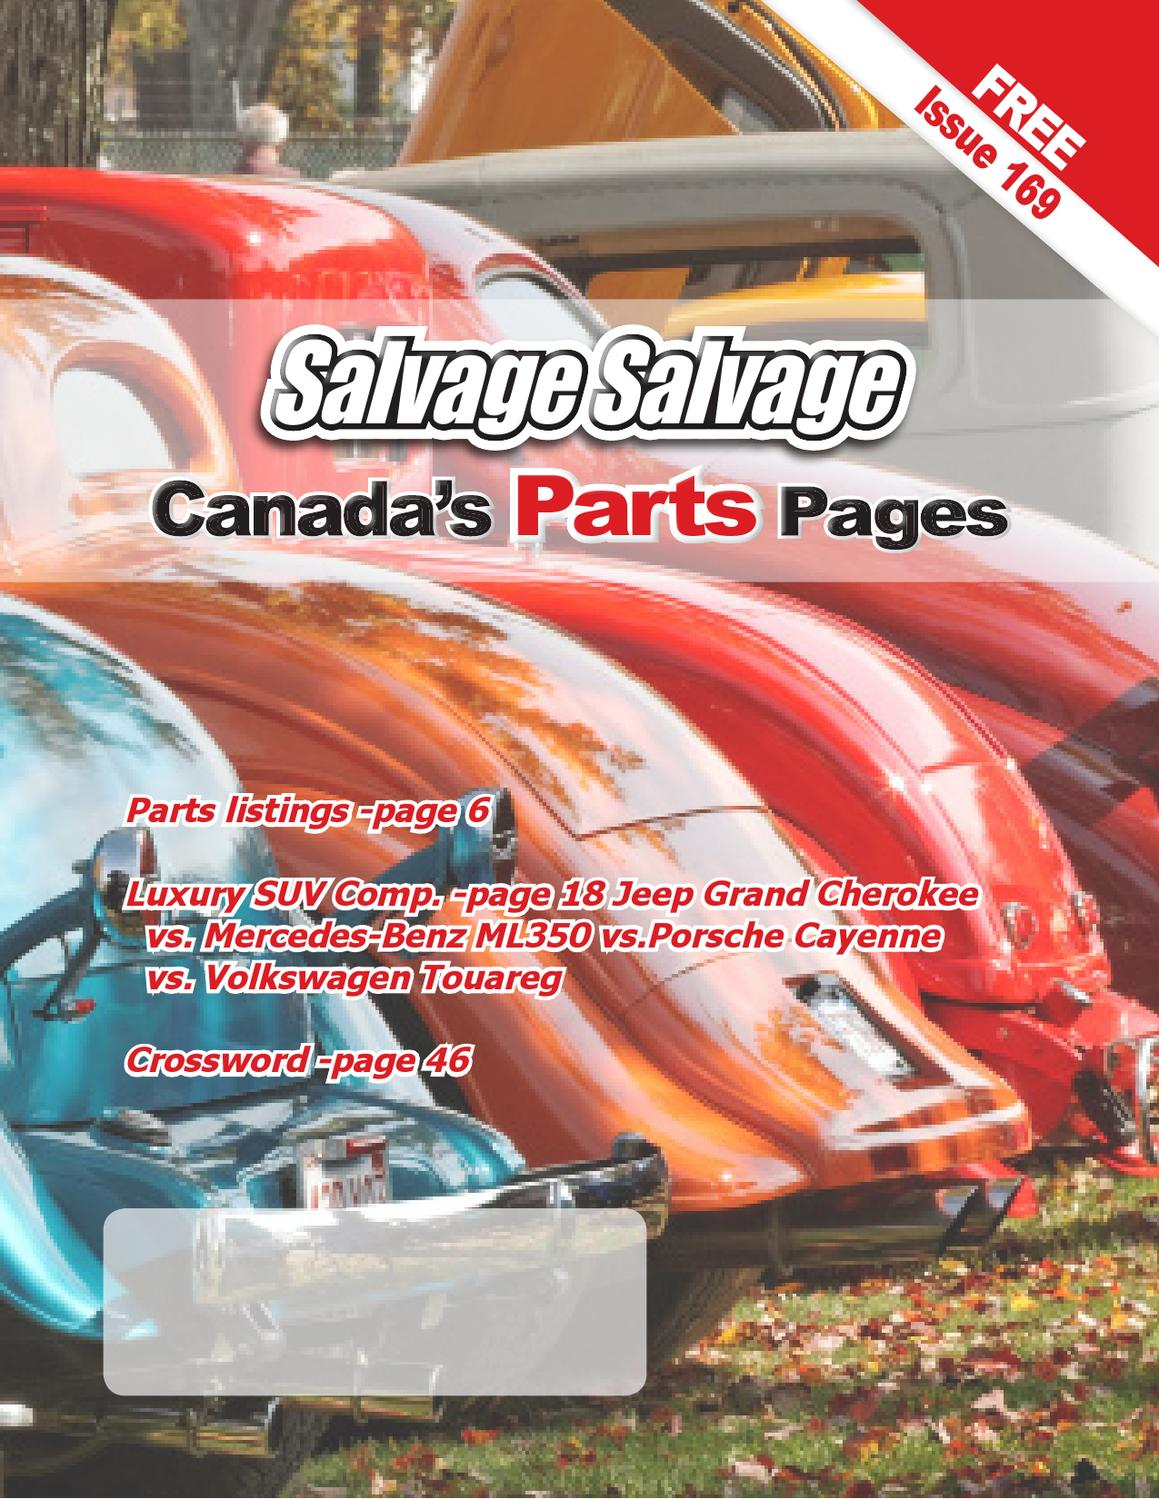 Salvage Canadas Parts Pages By The Mercedes Benz Ml350 2005 Magazine Issuu